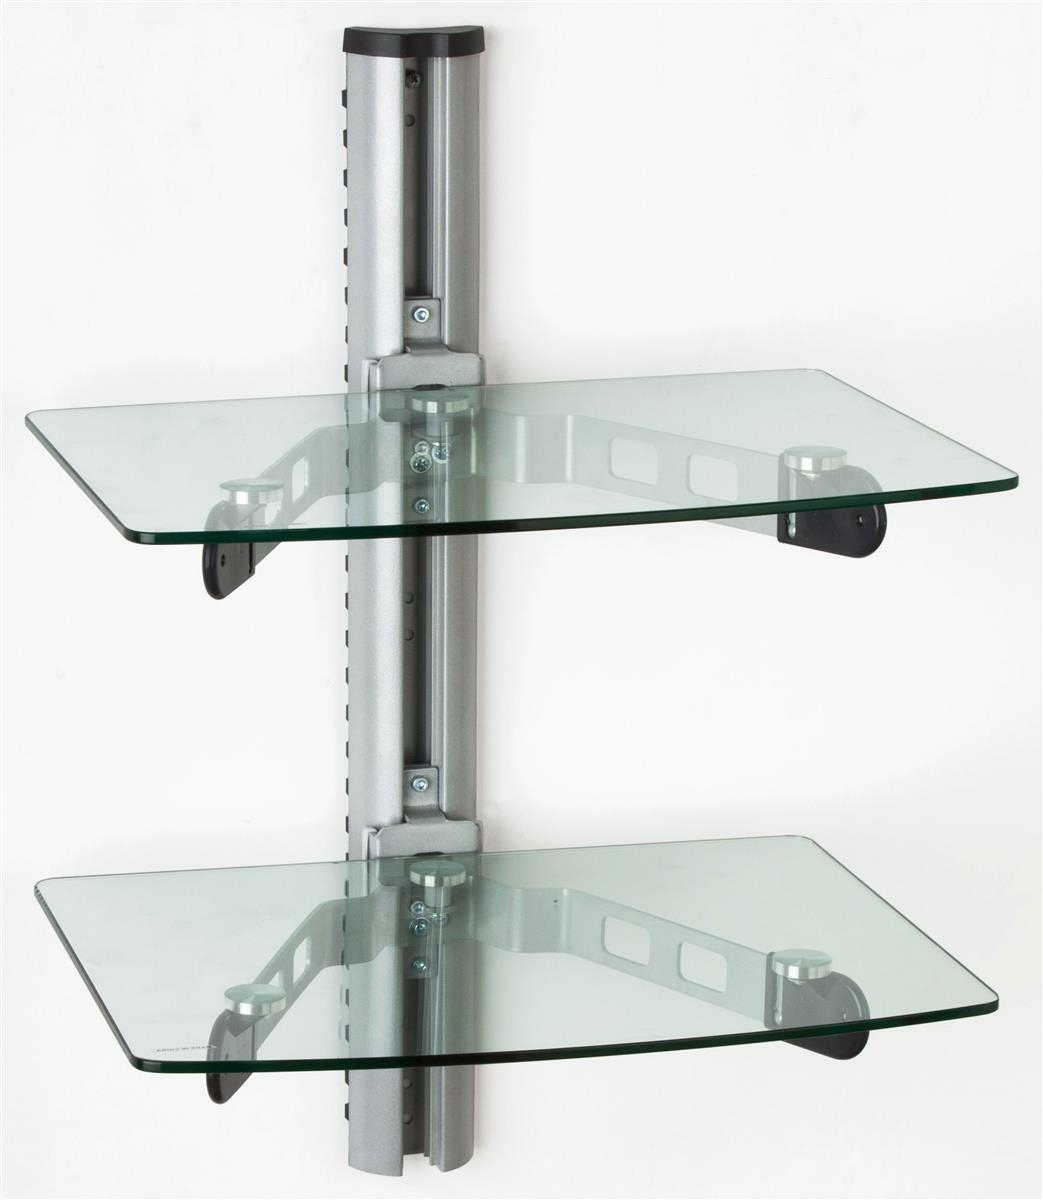 Wall Mounted Glass Shelves Av Component Stand Intended For Wall Mounted Glass Shelf (View 9 of 12)